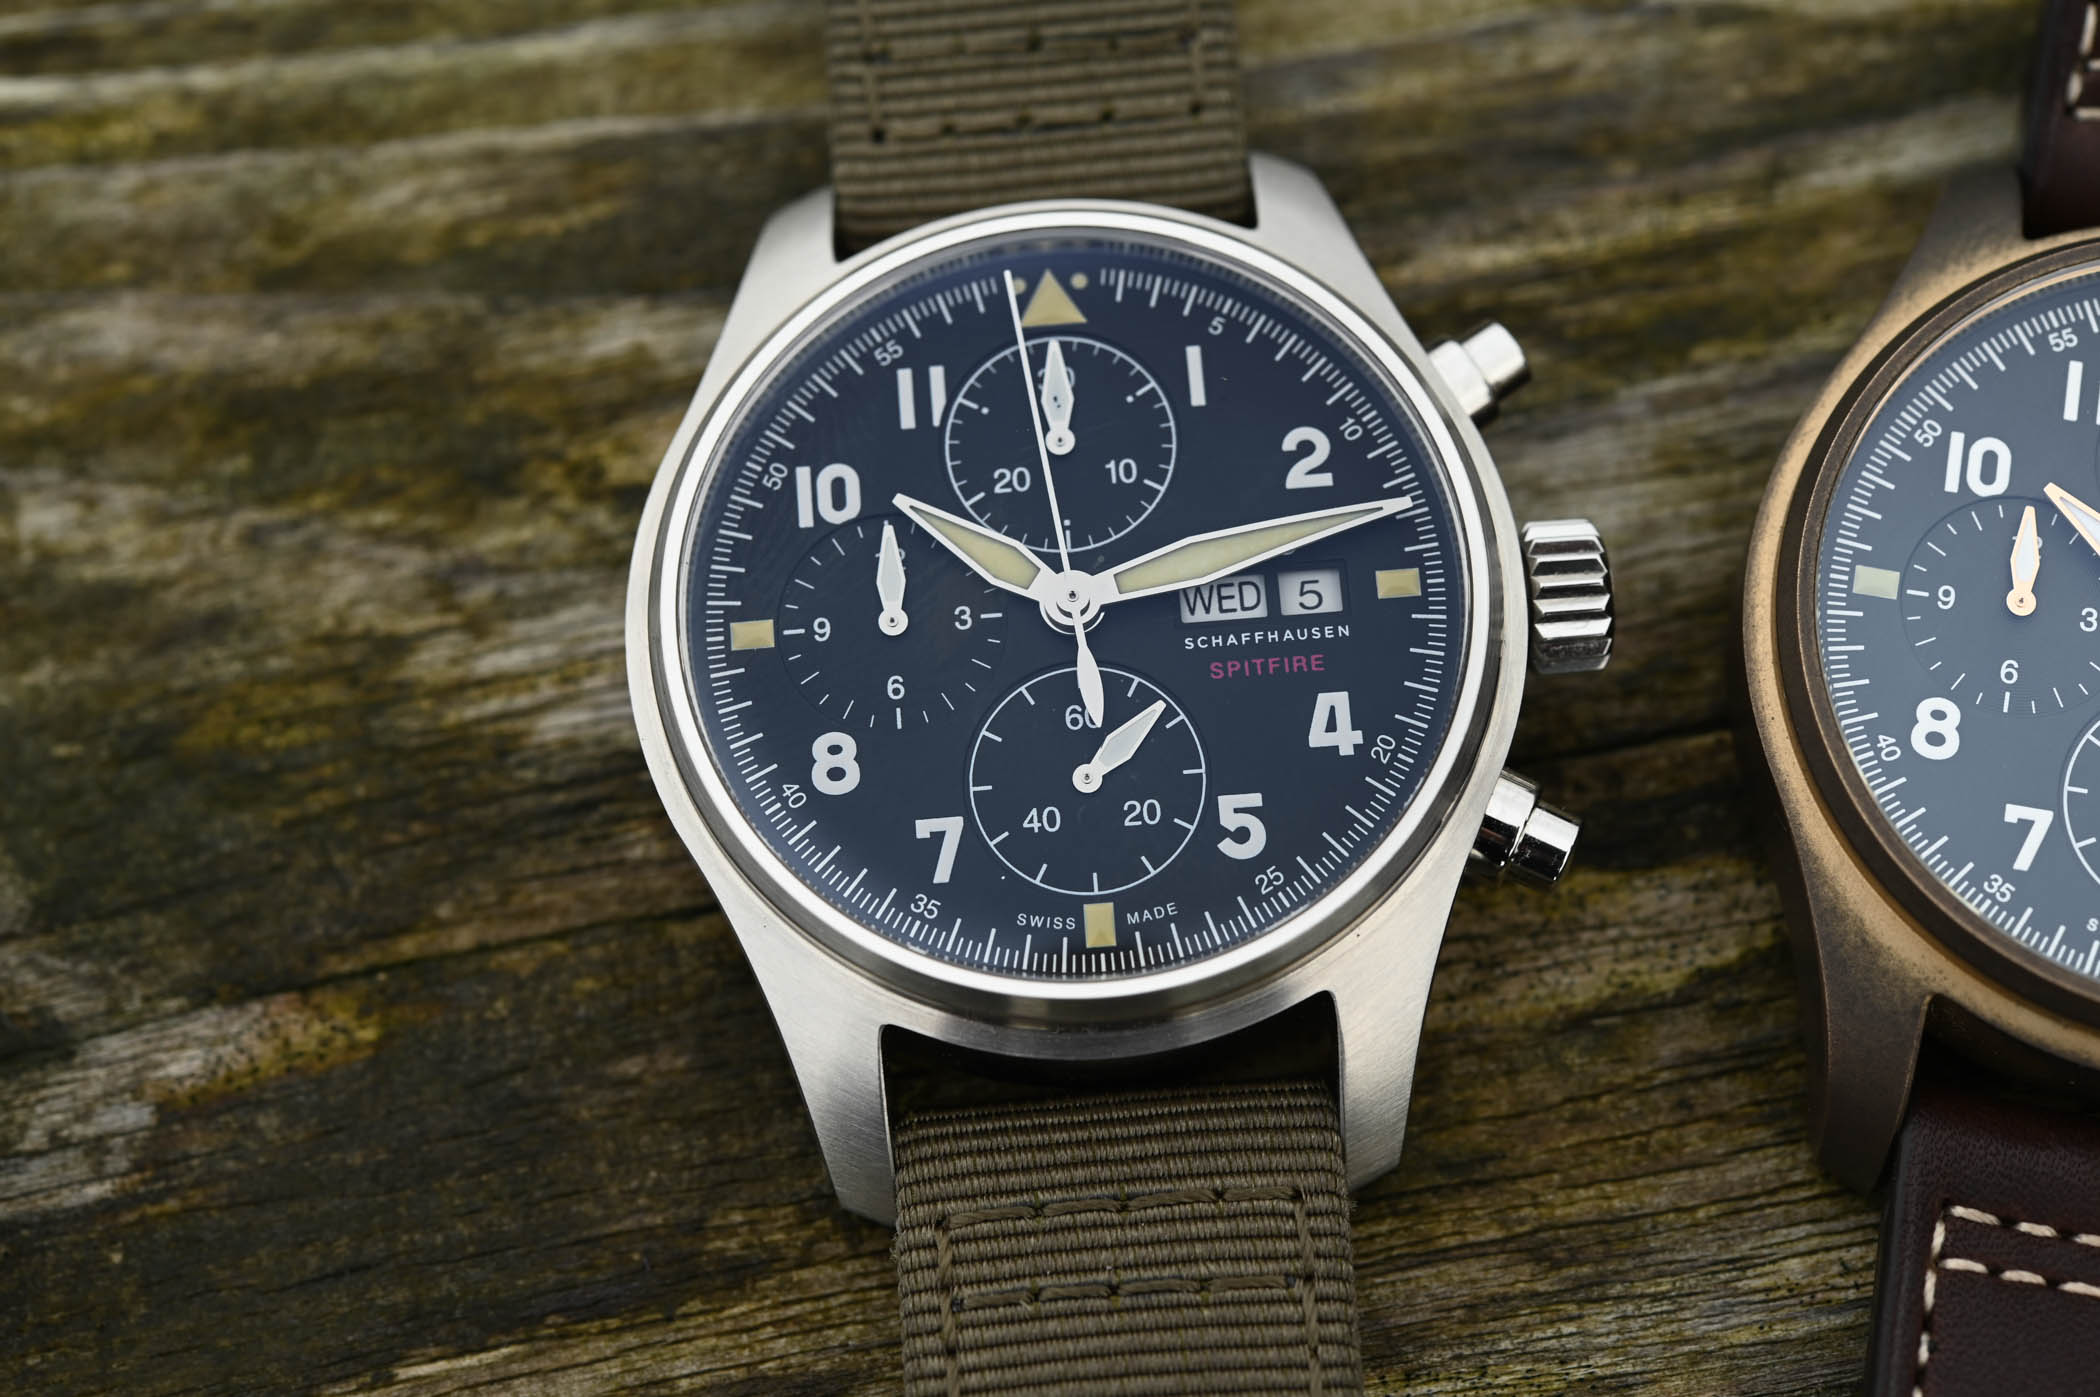 IWC Pilot's Watch Chronograph Spitfire Steel 41mm IW387901 - SIHH 2019 - 3